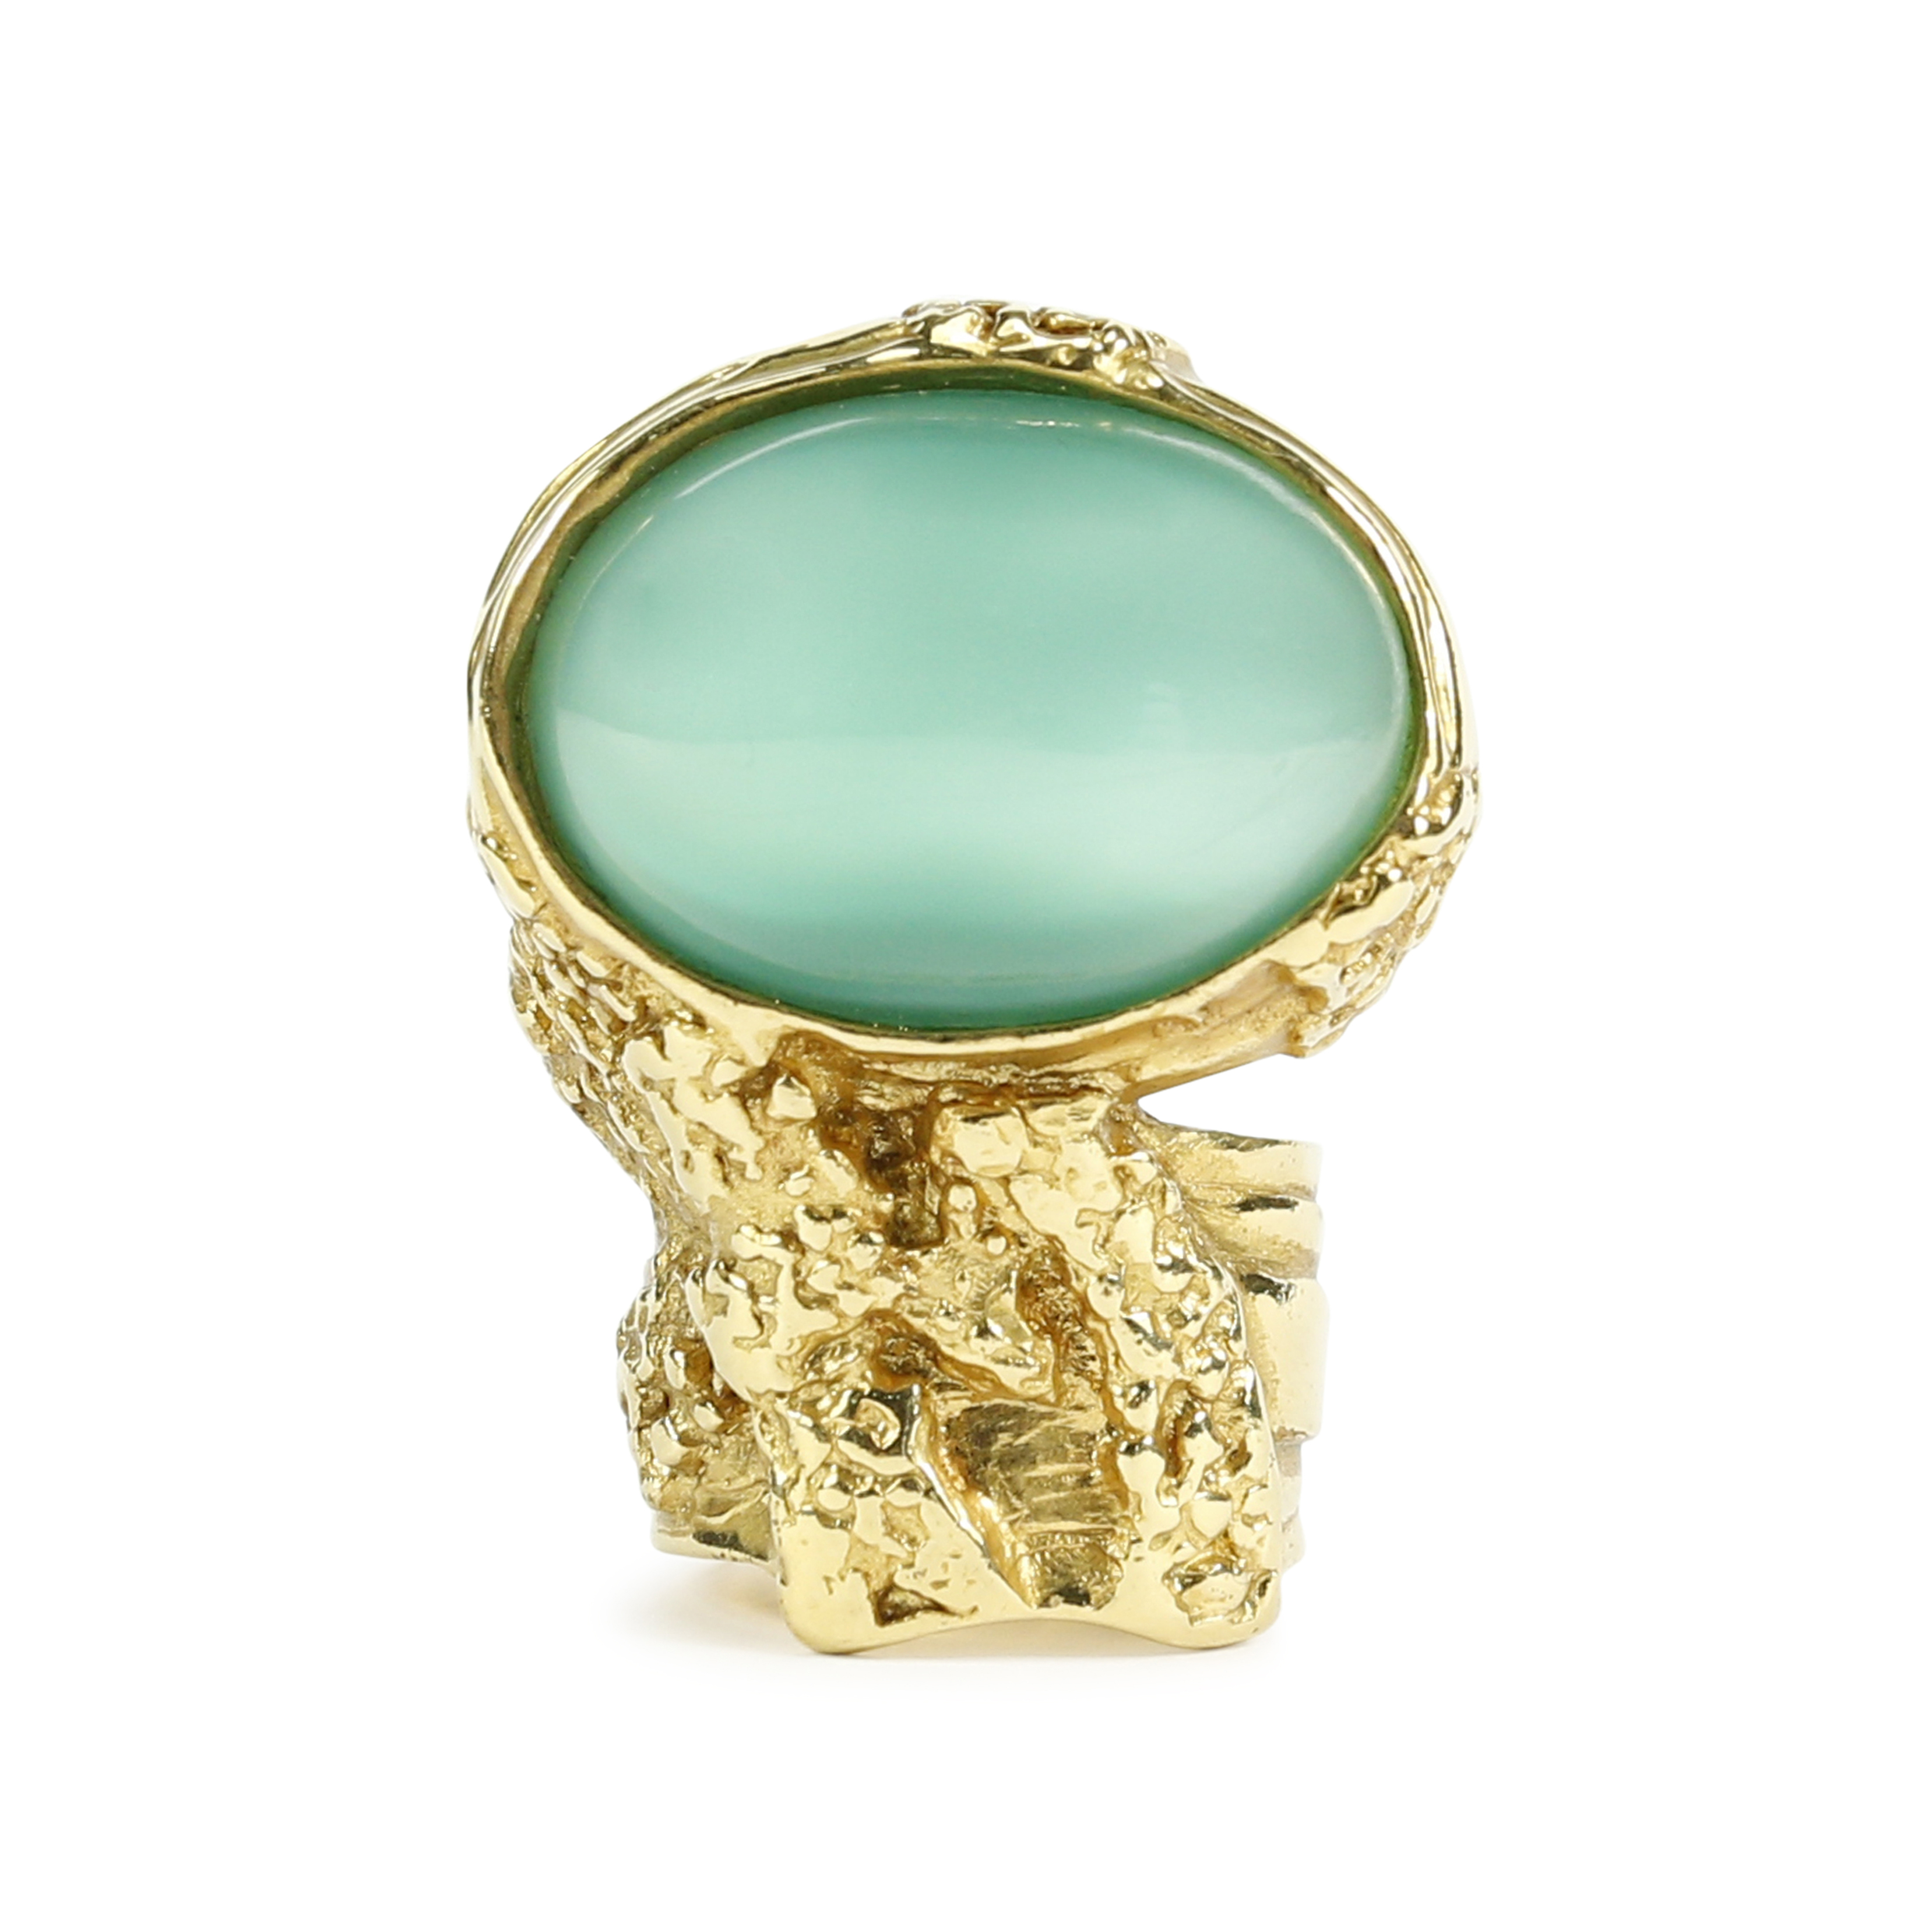 a19fc8fb0dc4 Authentic second hand yves saint laurent arty ring the fifth collection jpg  3315x3315 People with ysl